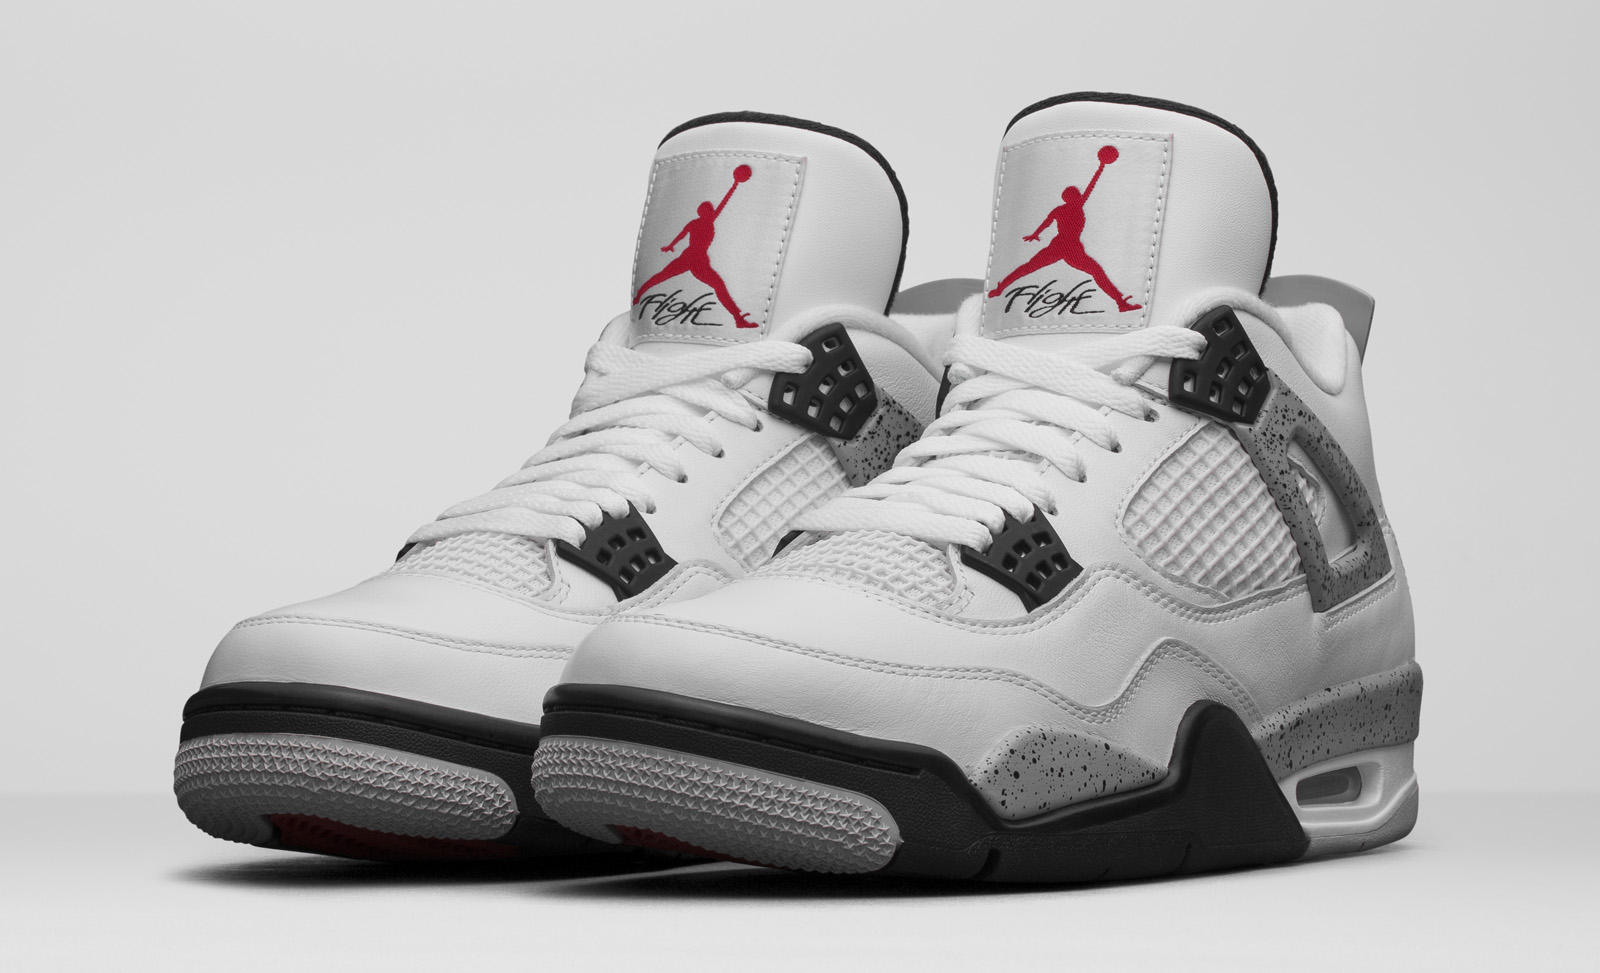 9a40f85803d2ce cement grey Archives - Air 23 - Air Jordan Release Dates